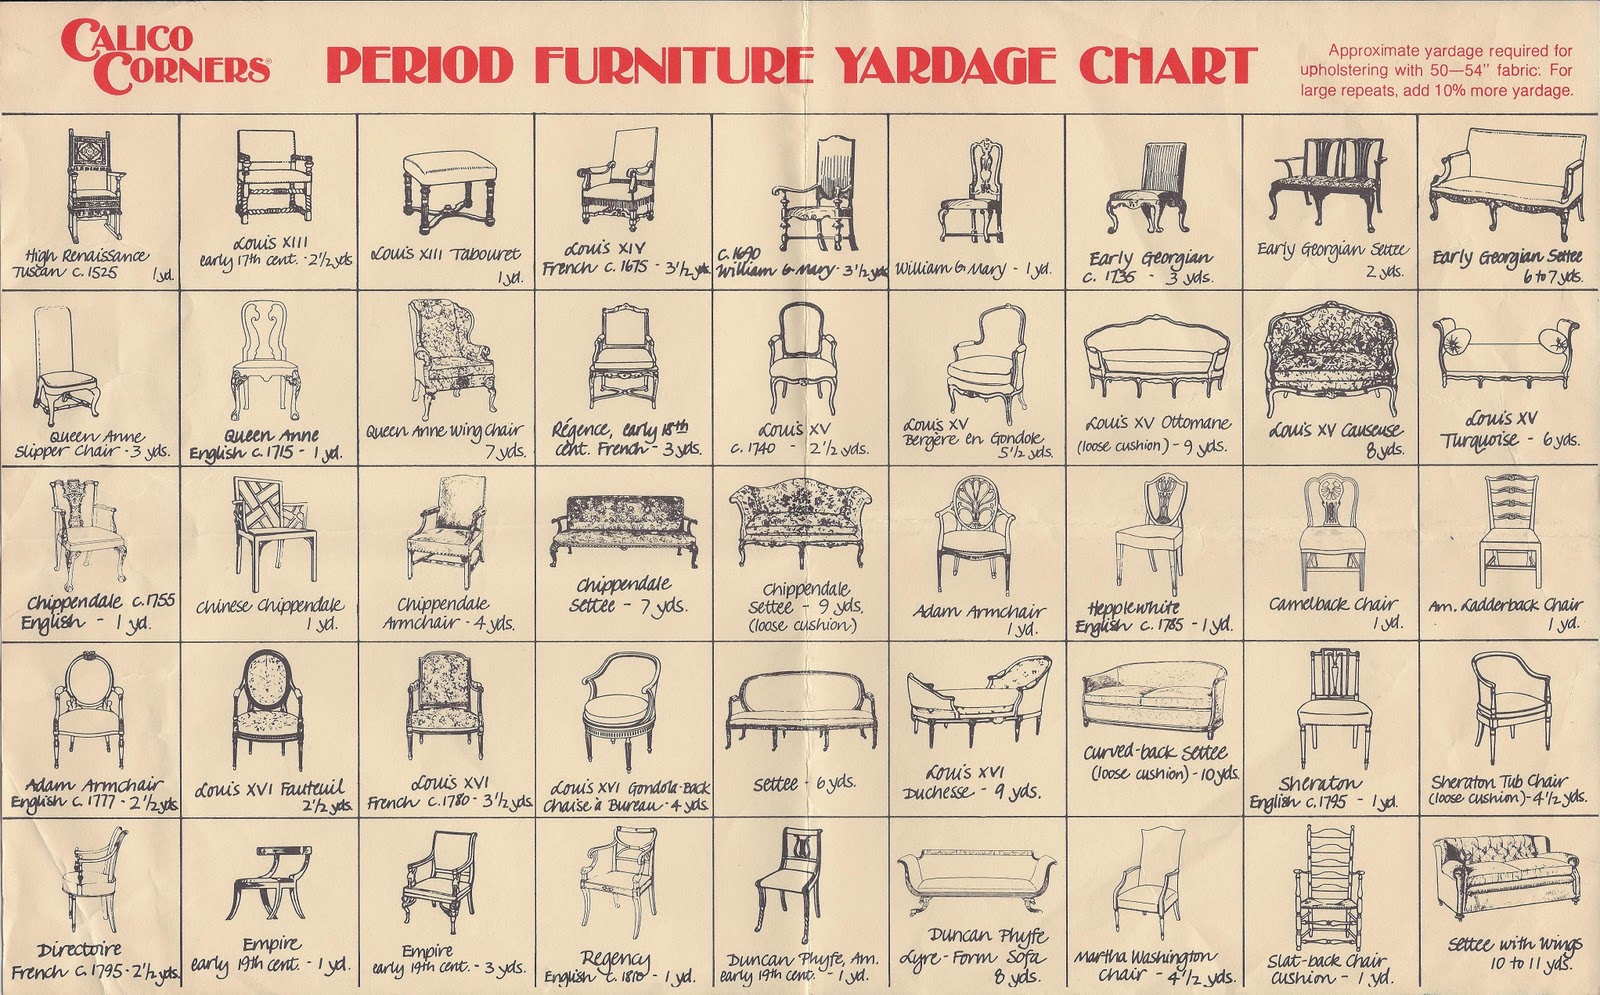 Vintage Kitsch Couture Period Furniture Yardage Chart